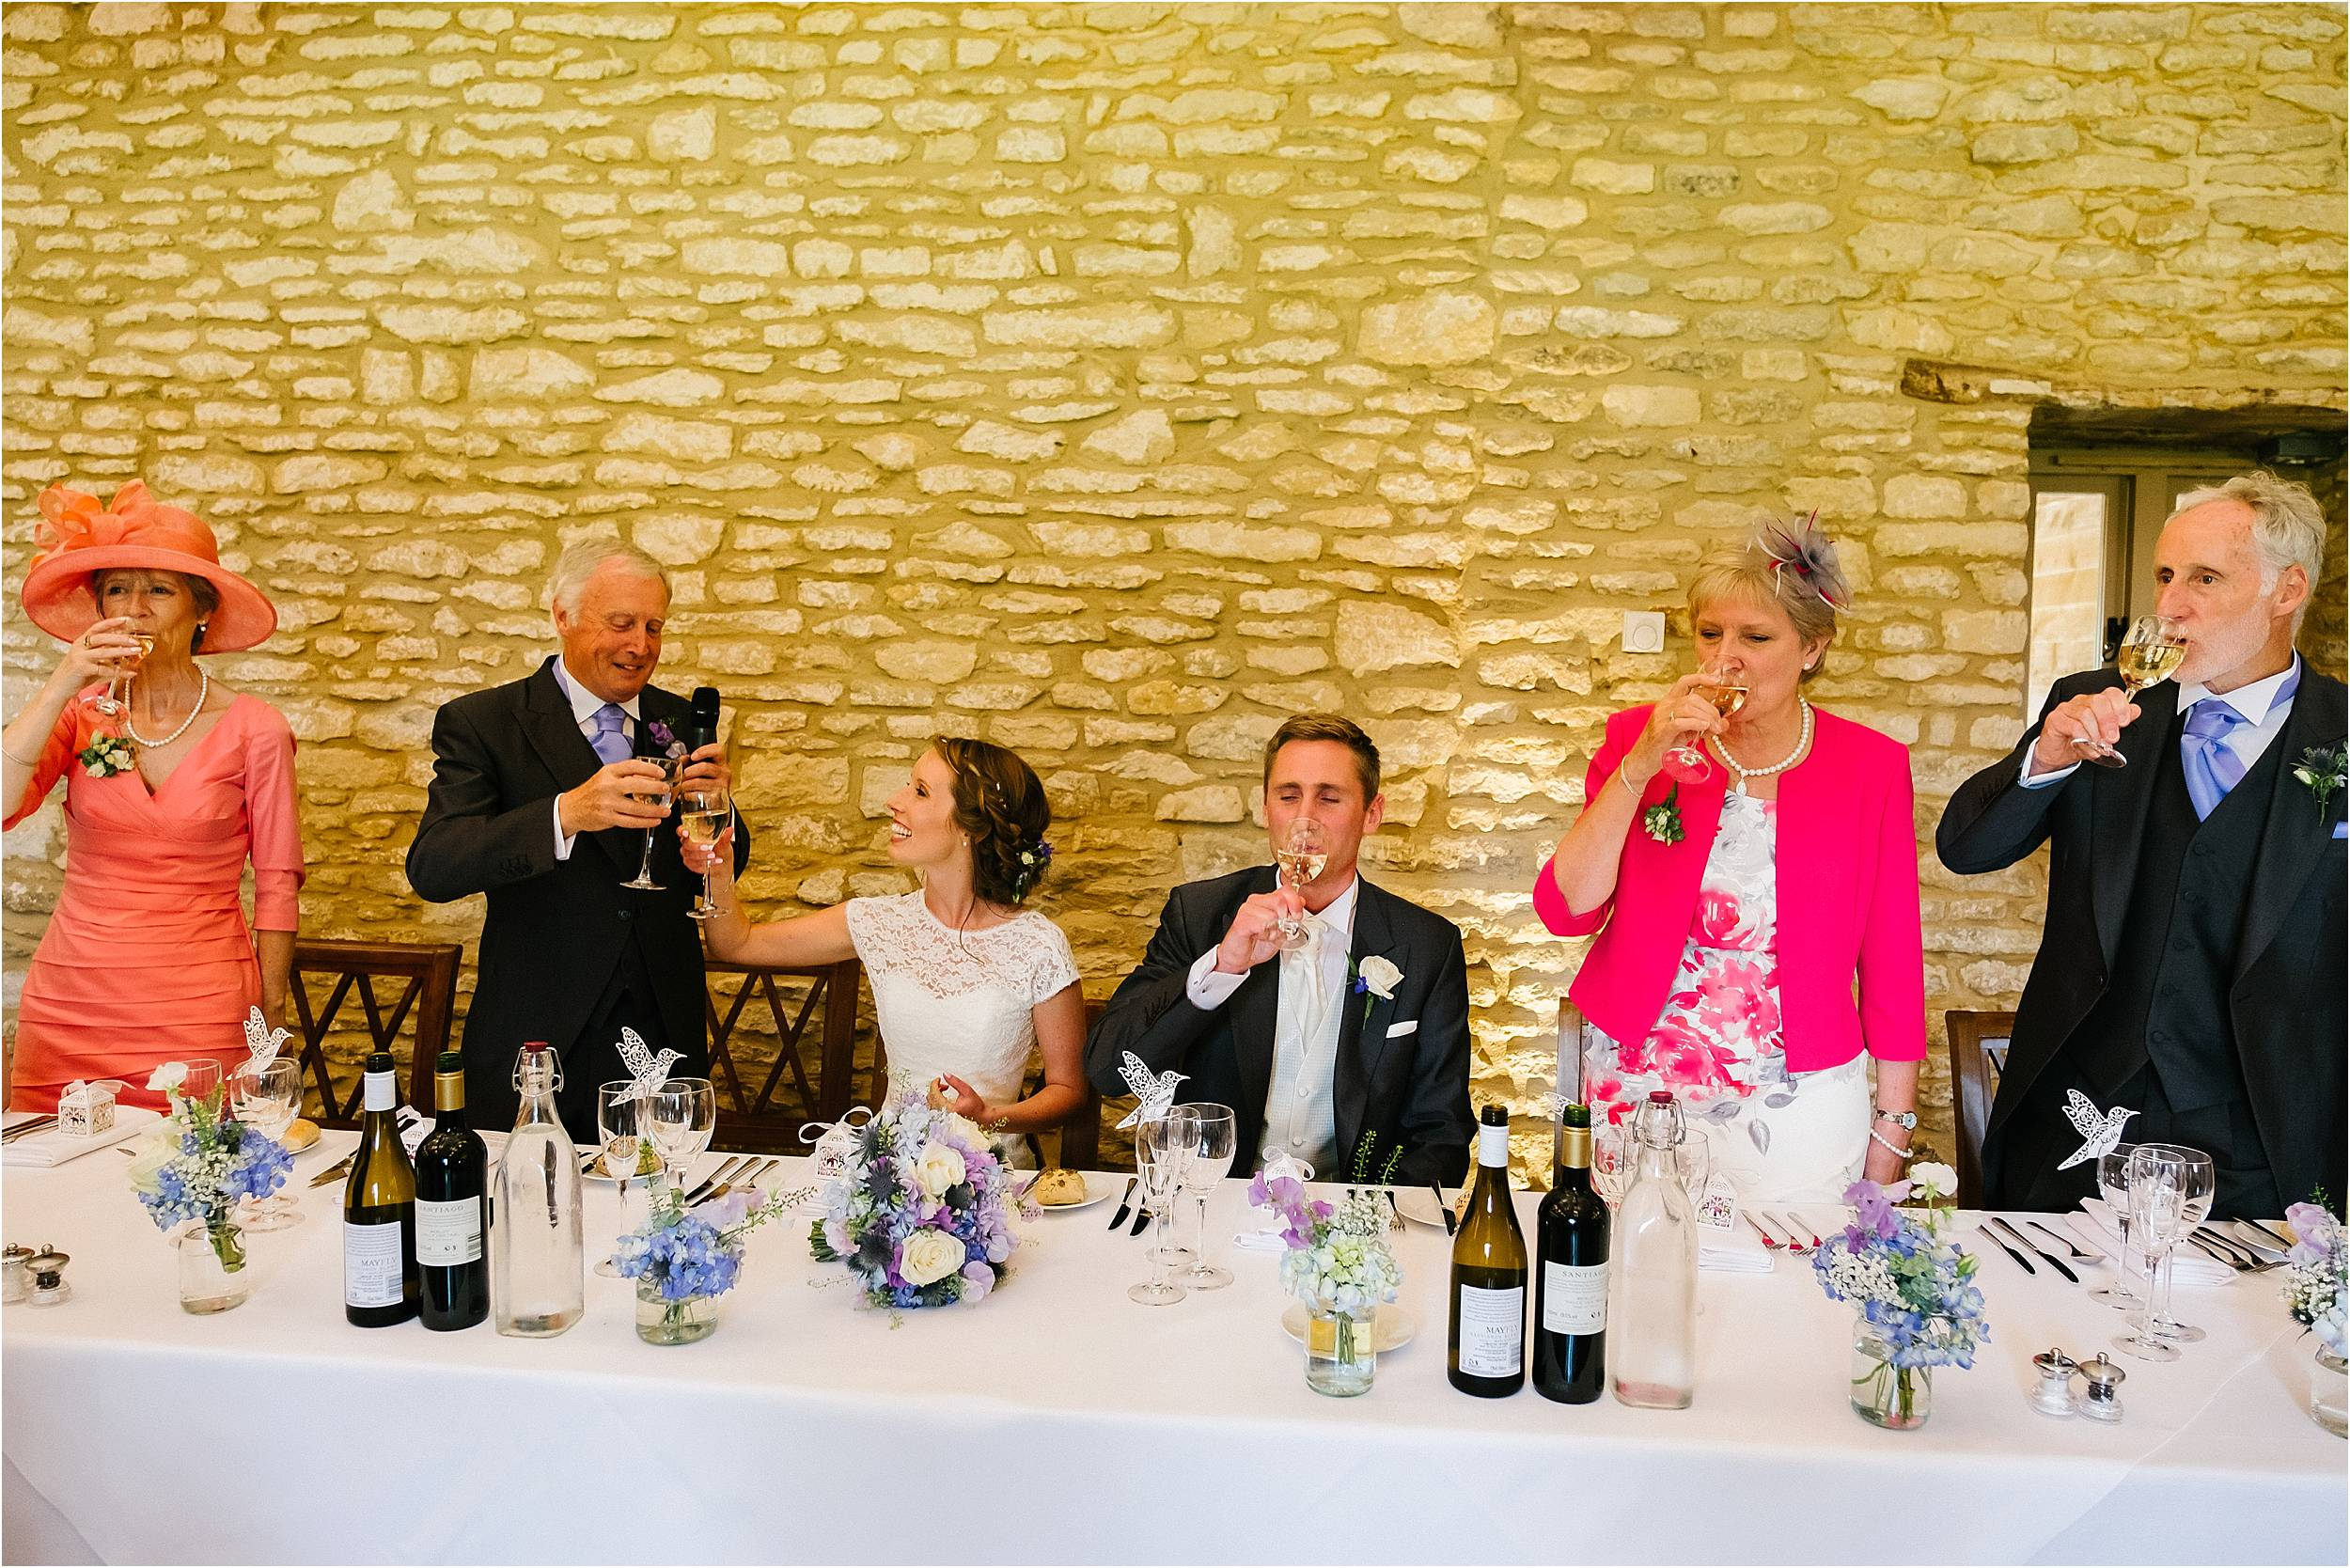 Caswell House Oxfordshire Wedding Photographer_0241.jpg